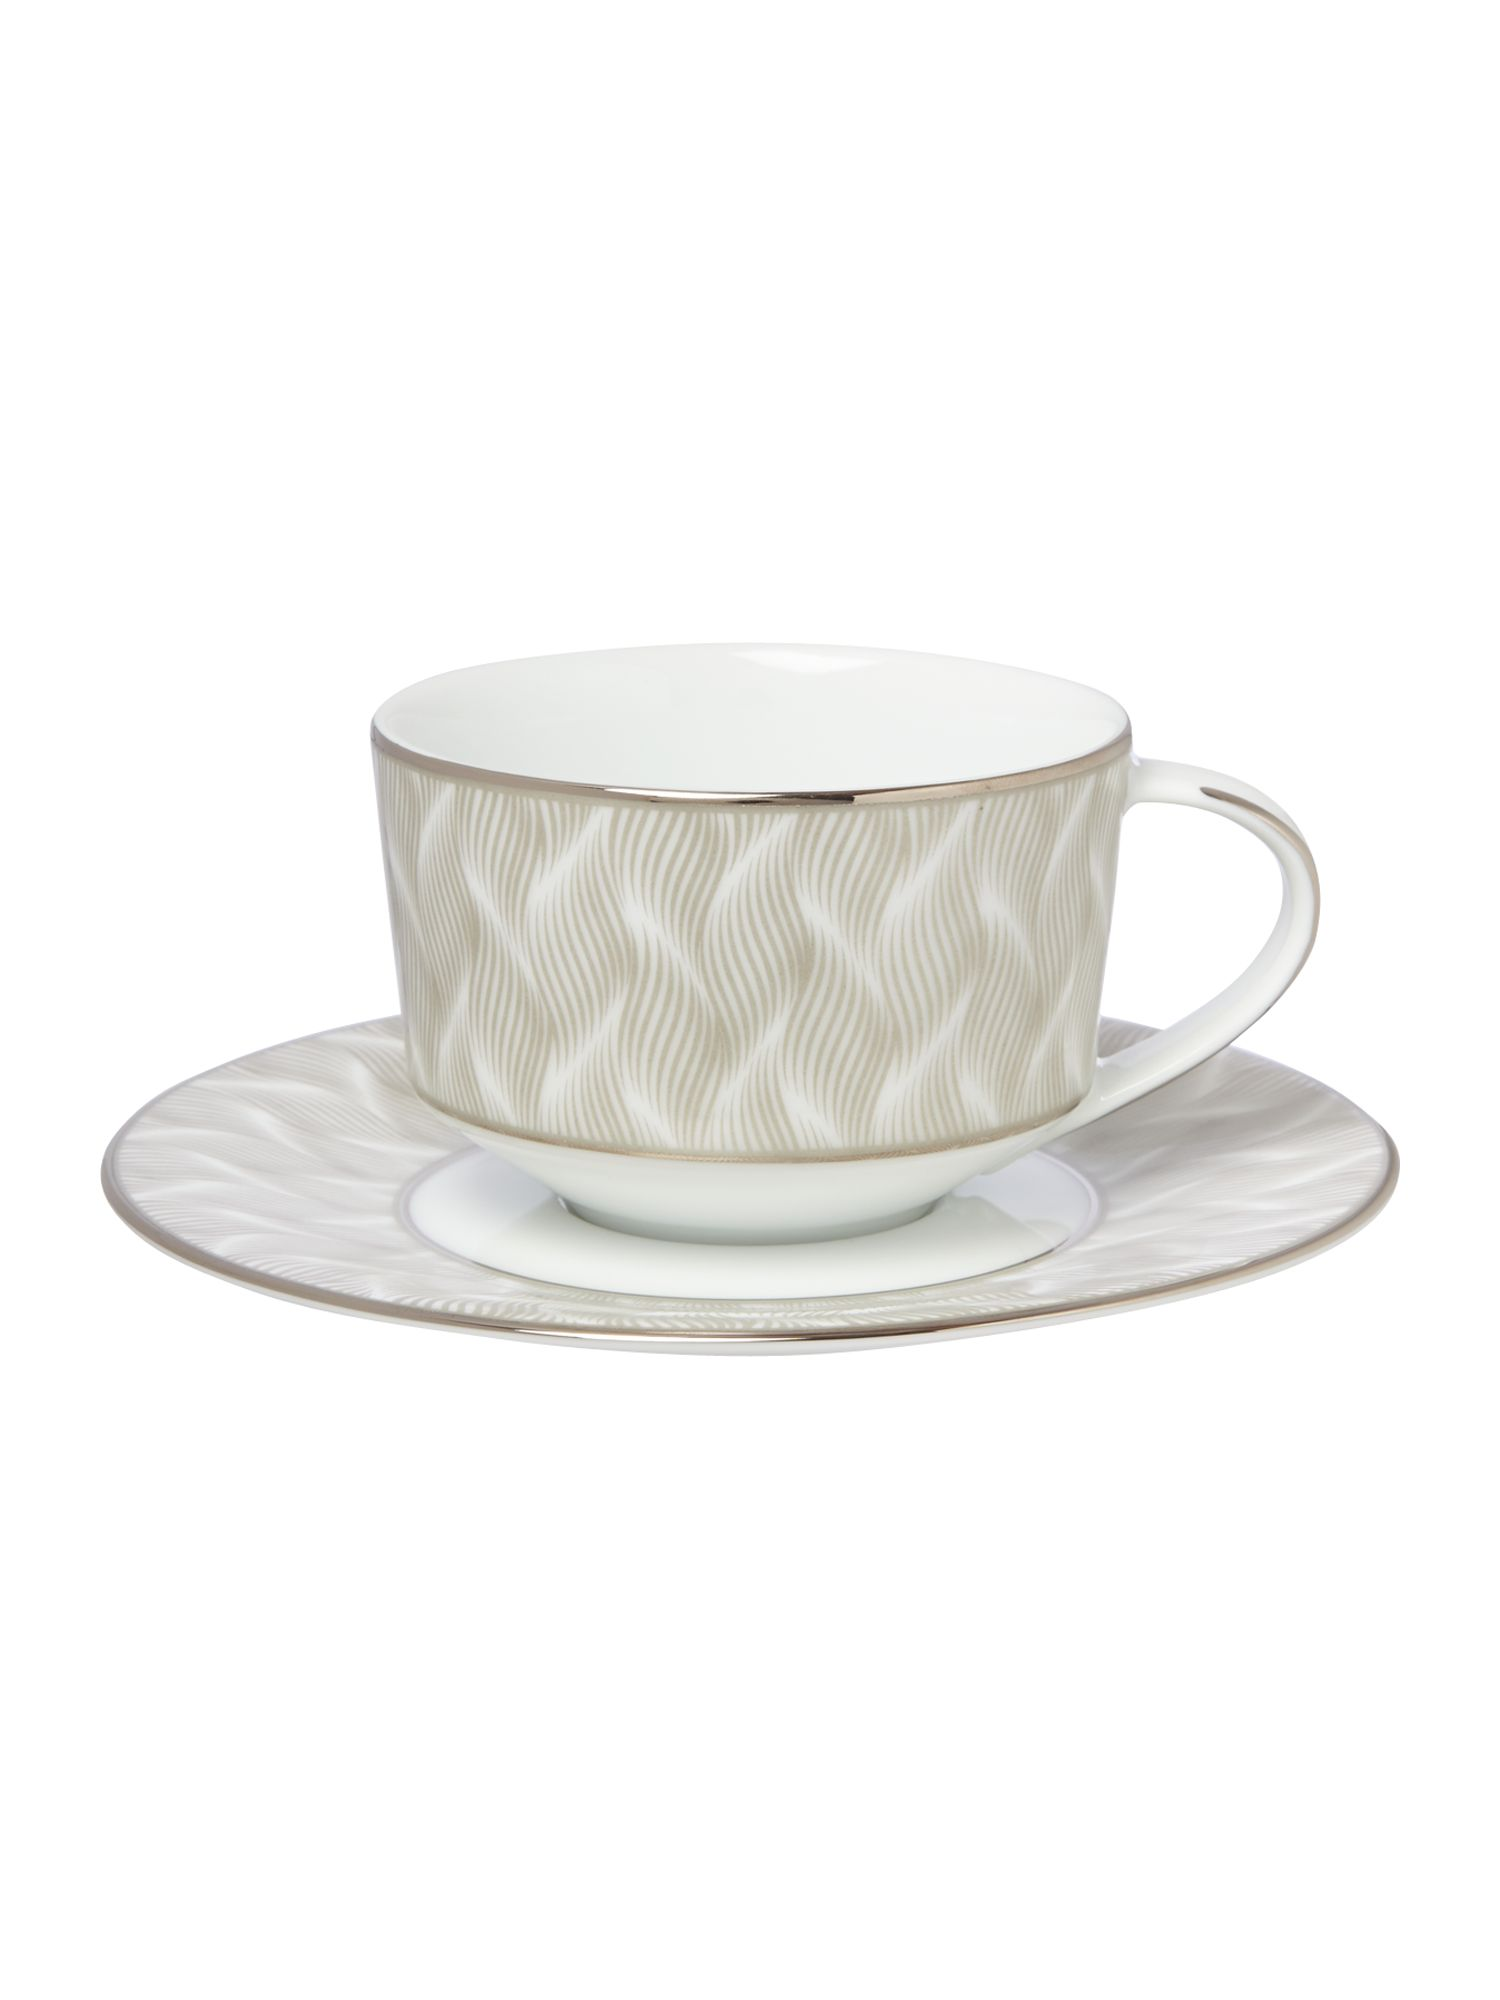 Nisha tea cup and saucer